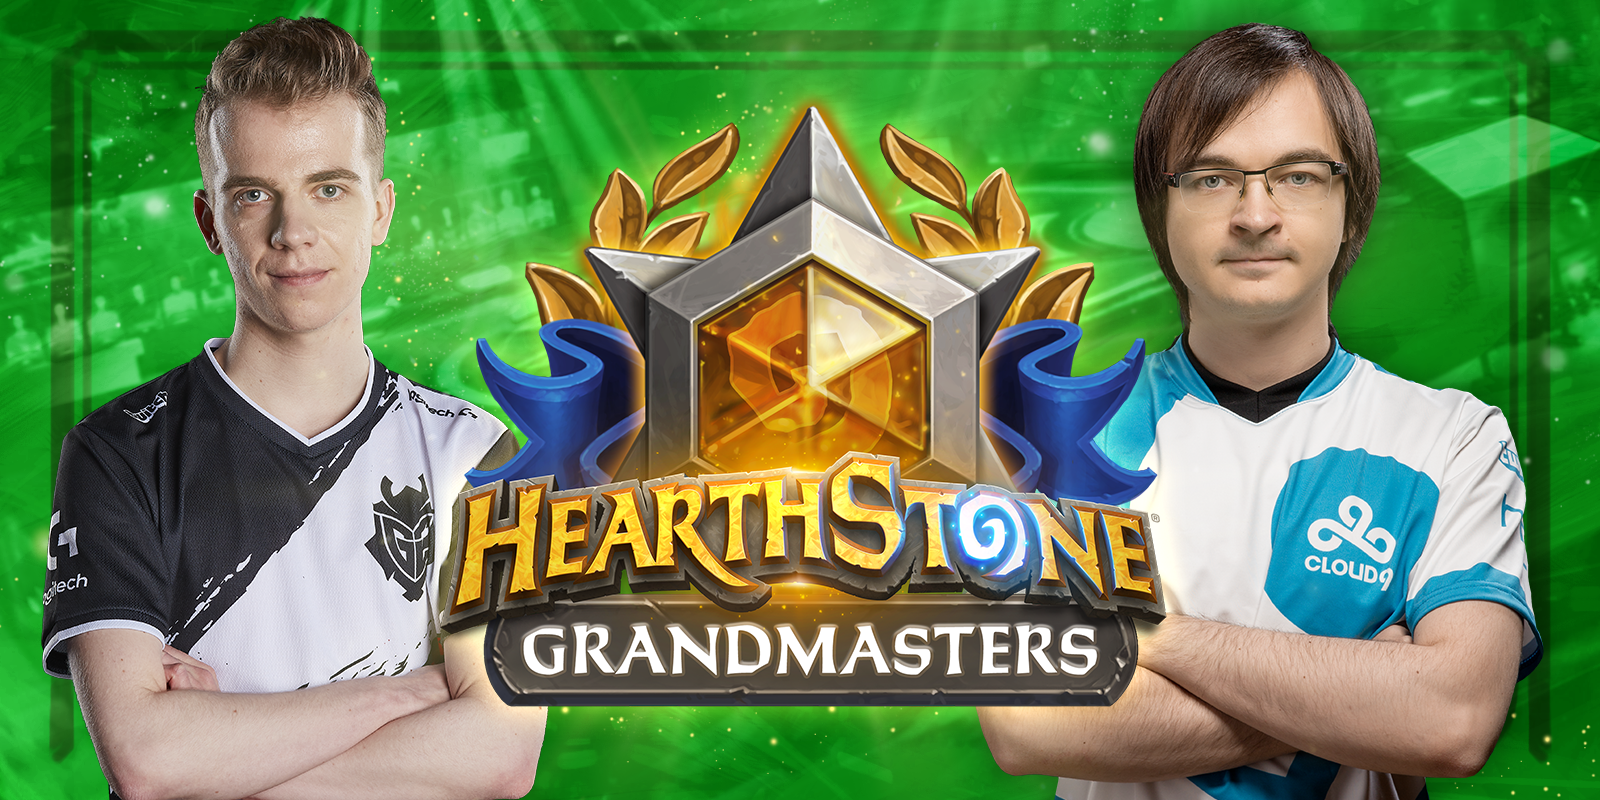 Hearthstone™ Community - Fansites and Beta Key Giveaways! - Hearthstone